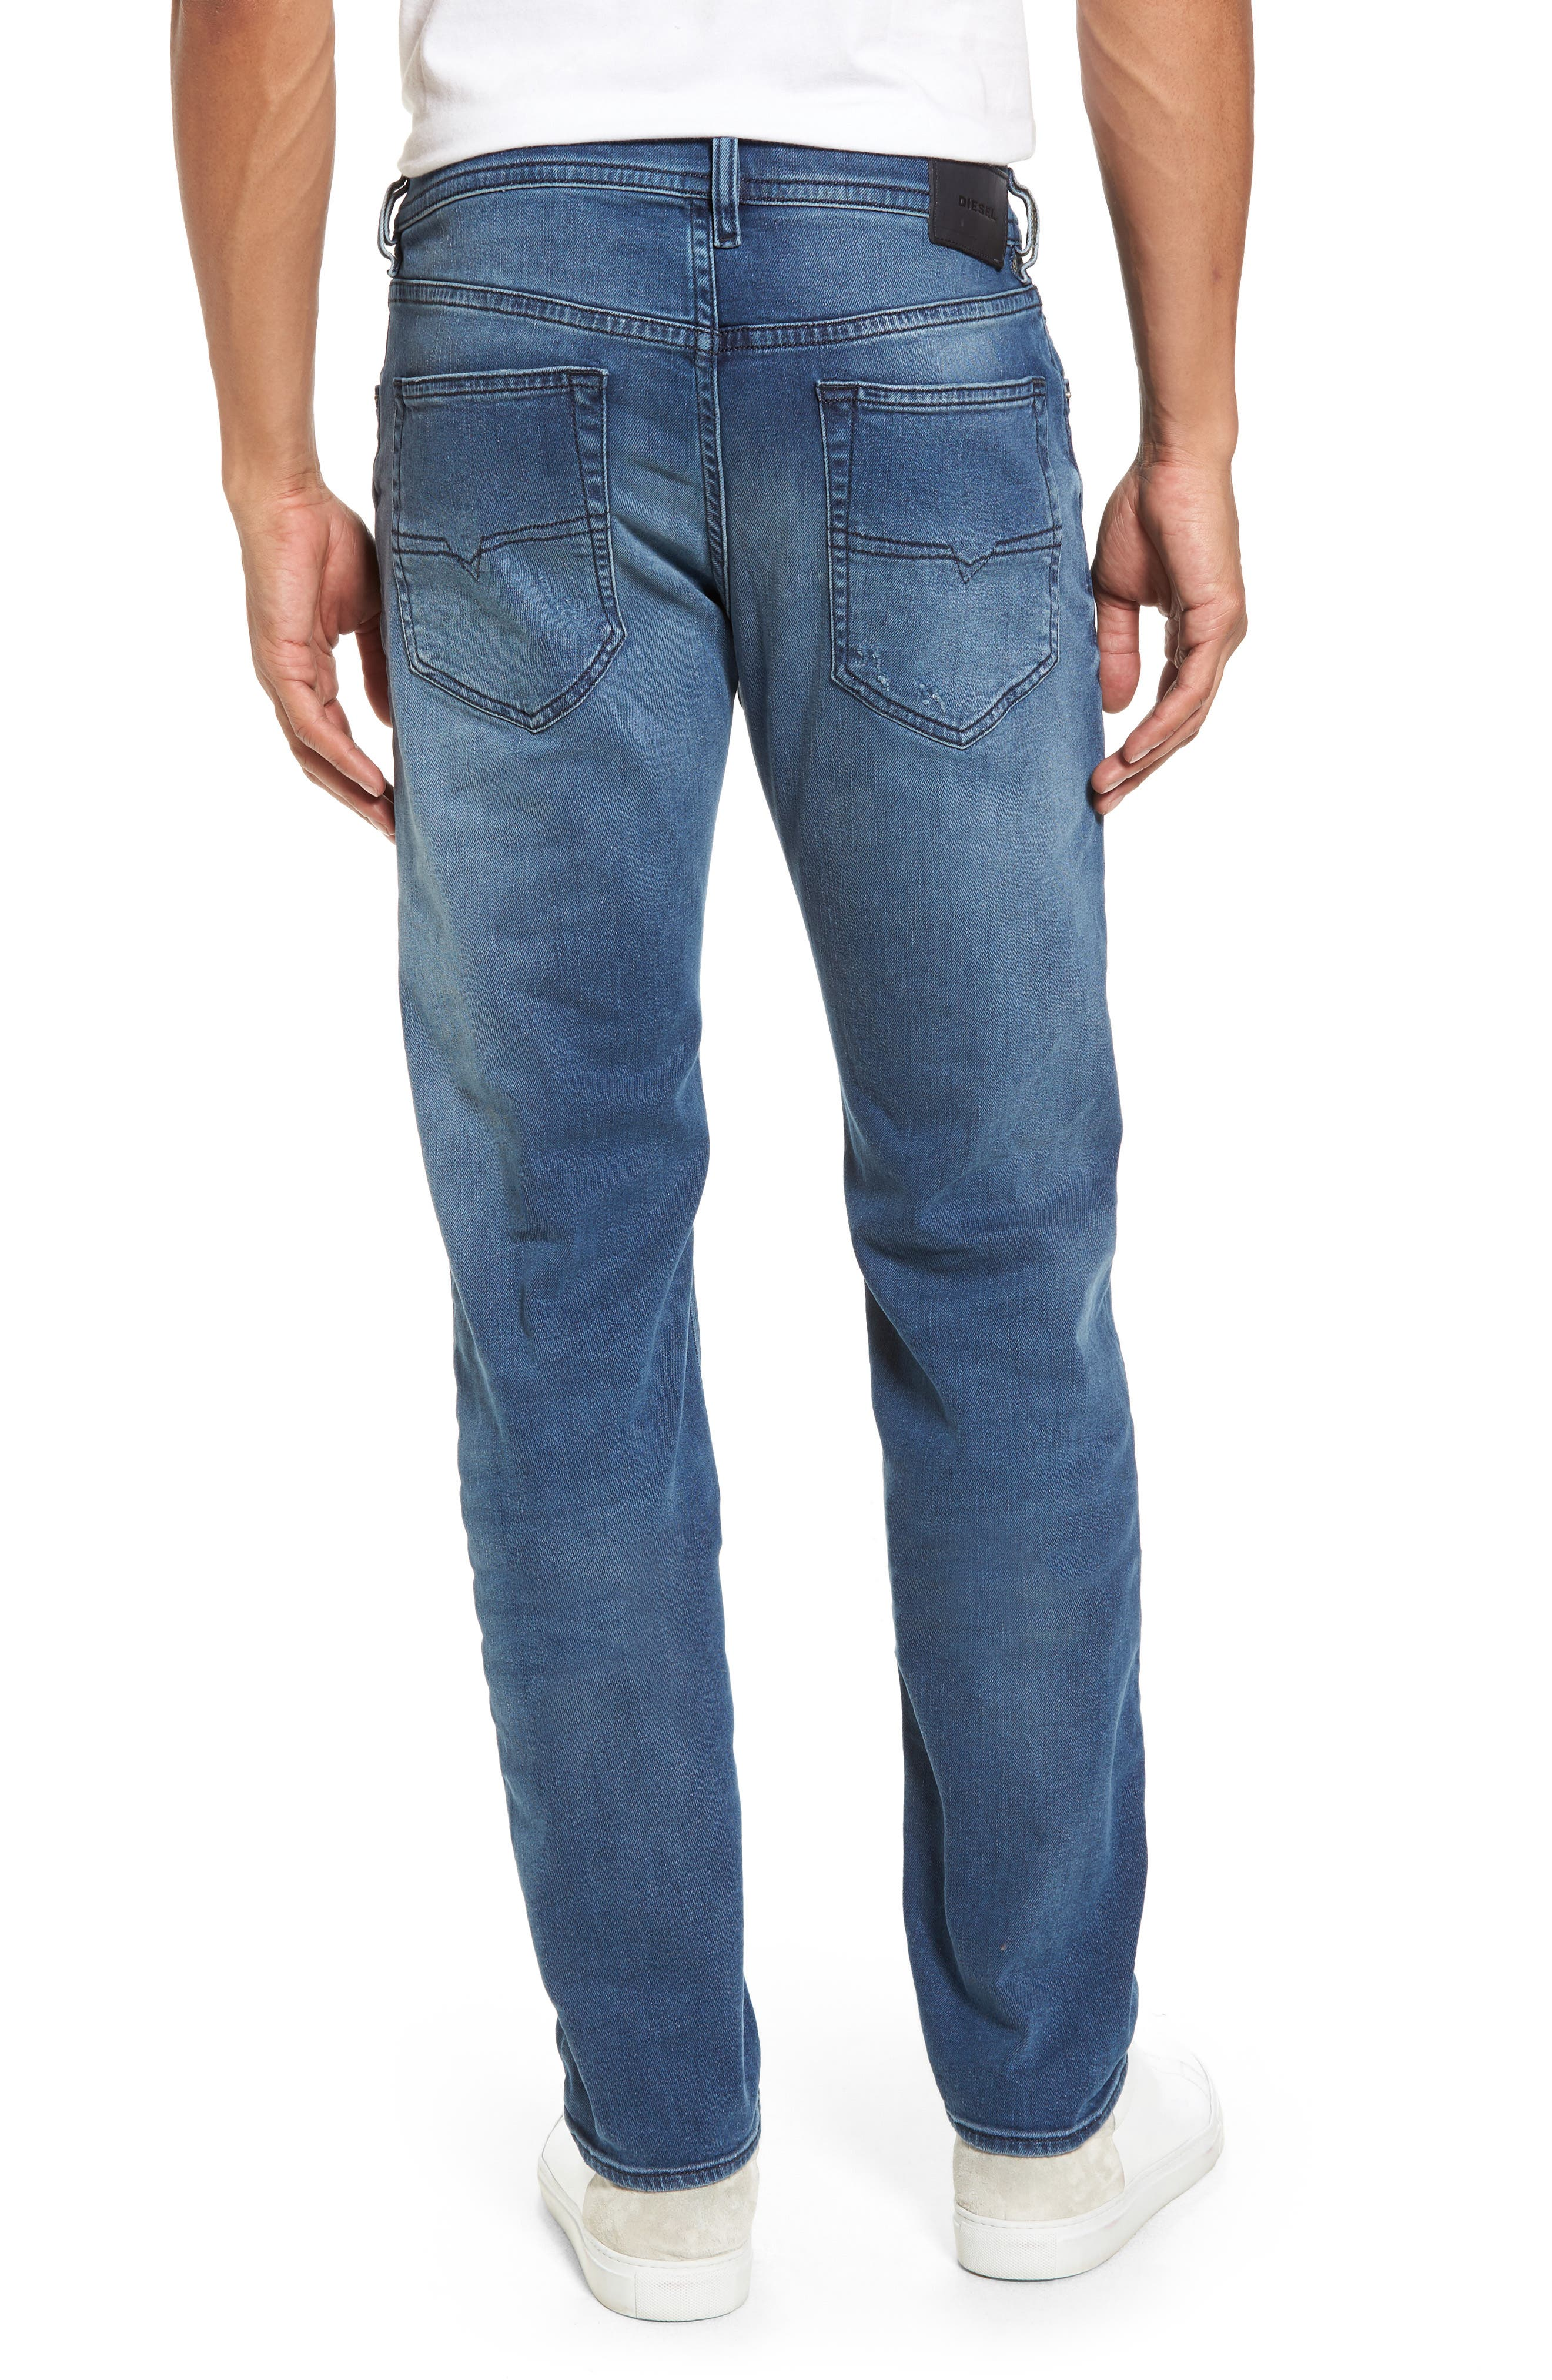 Buster Slim Straight Fit Jeans,                             Alternate thumbnail 2, color,                             Denim